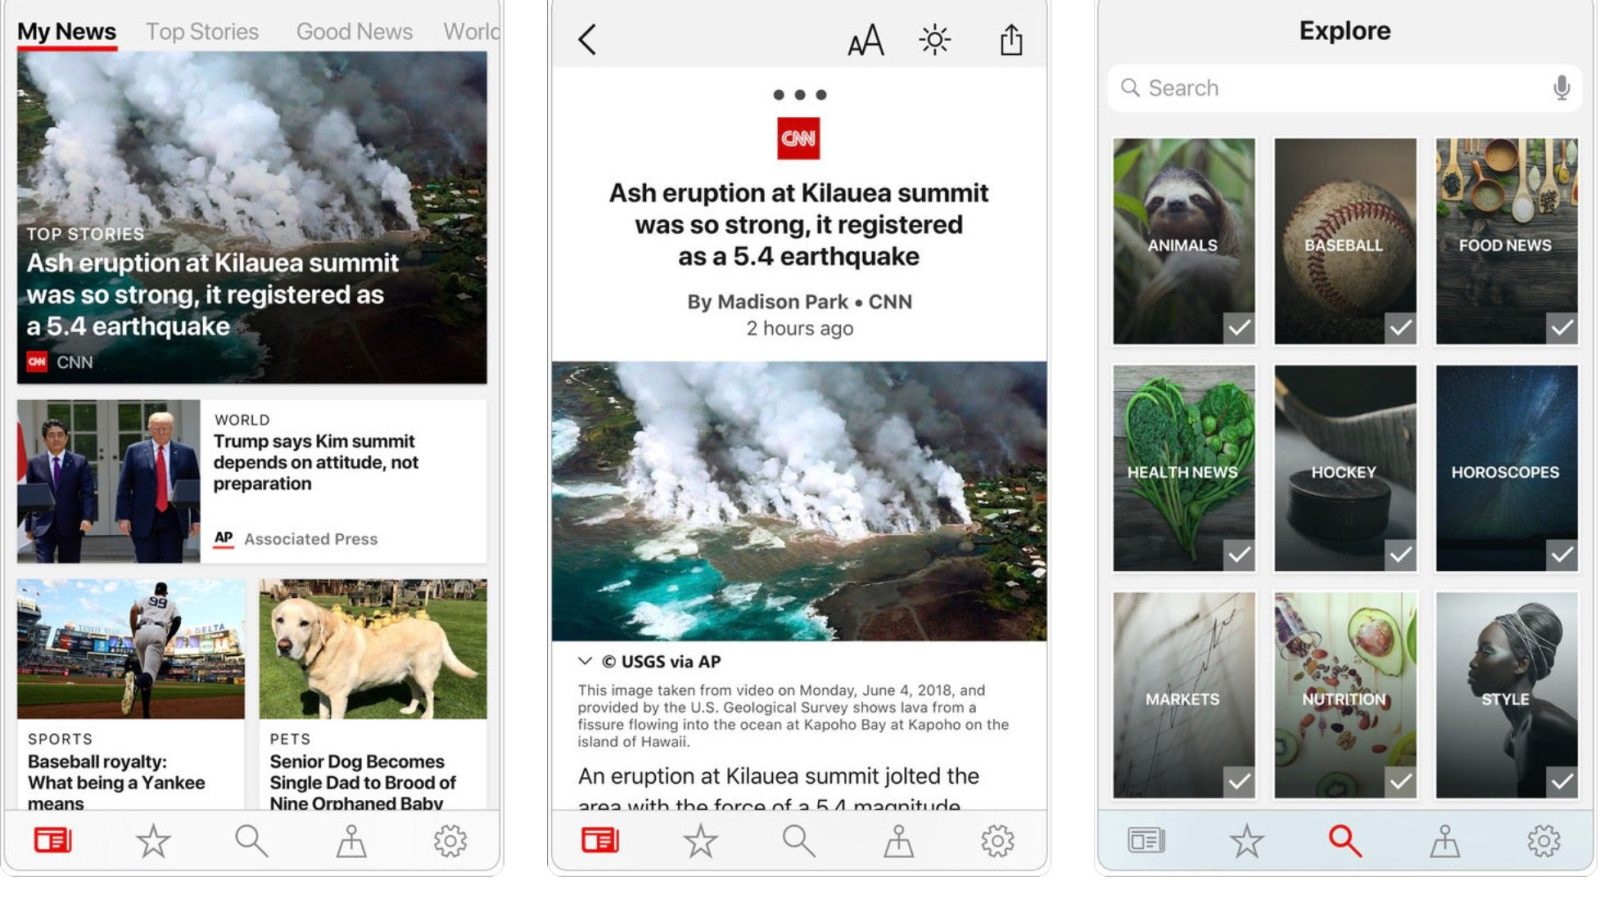 Microsoft Introduces Its Google News Competitor 'Microsoft